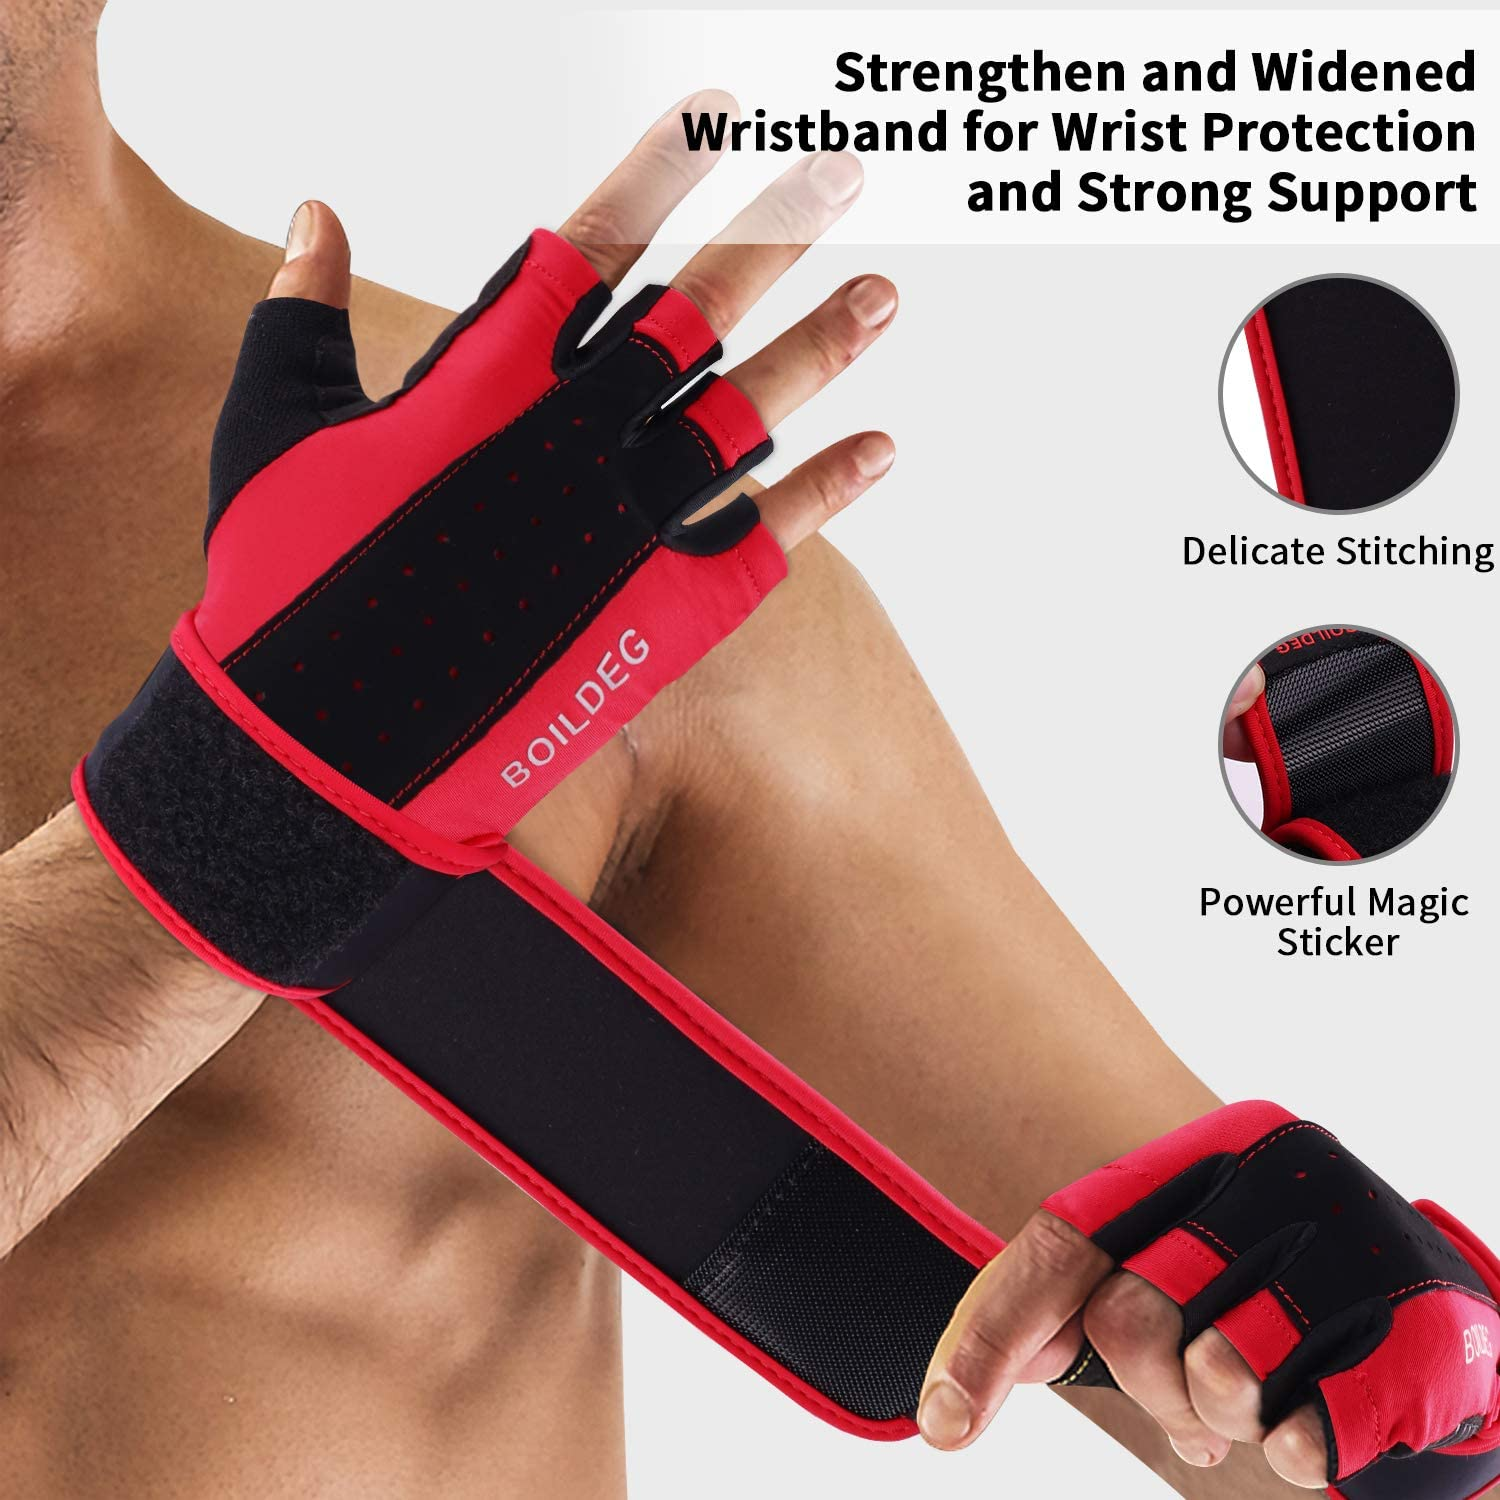 boildeg Workout Gloves Men and Women,Weight Lifting Gloves,Gym Gloves with Wrist Wraps Support Full Palm Protection /& Extra Grip for Fitness//Weightlifting//Exercise//Pull Ups//Cross Training